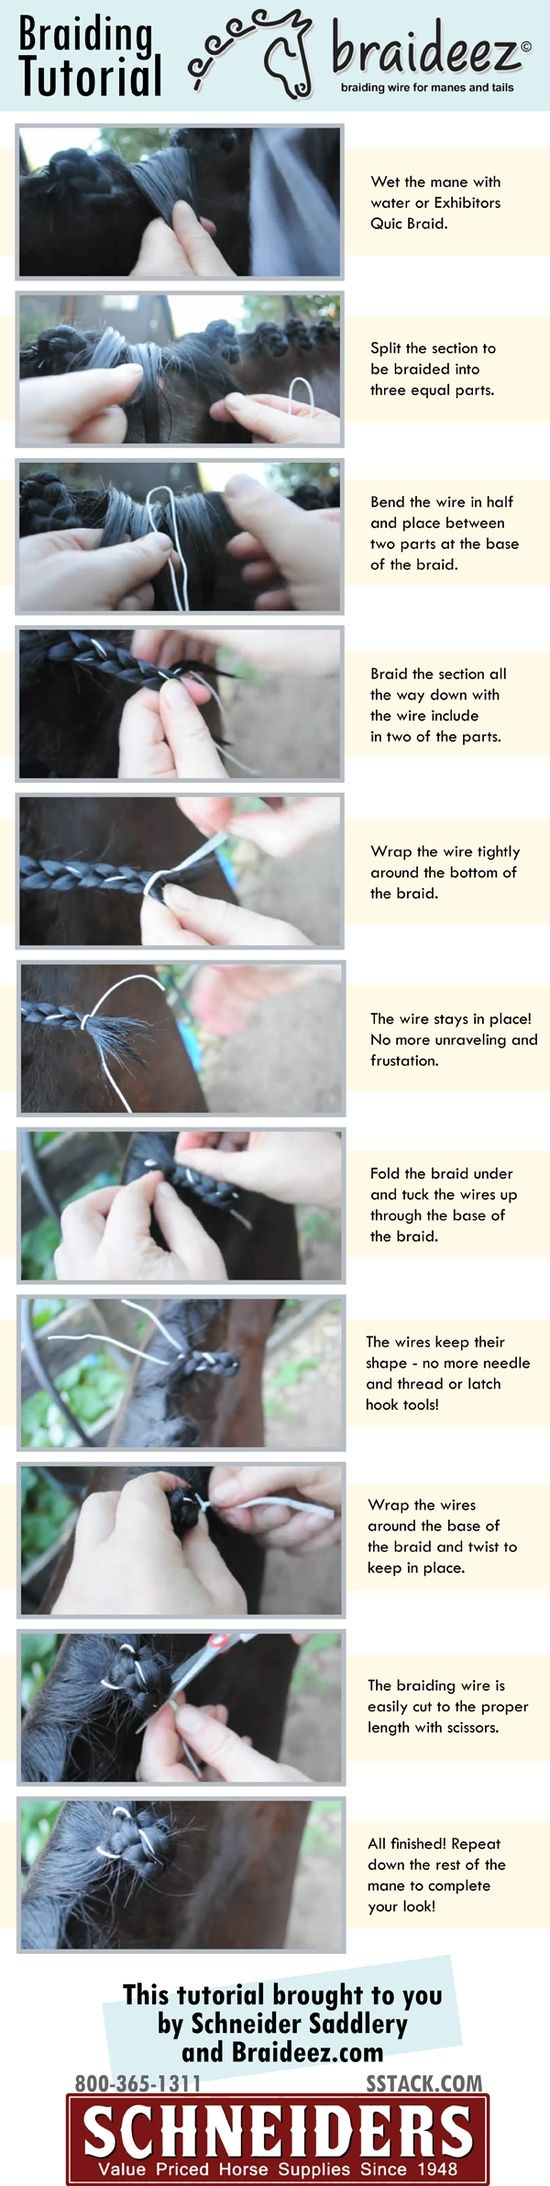 braideez braiding tutorial | horse show week Maybe I can pick up some tips on keeping braids even in height.  I can get them even in size, but can never get the perfect, neat height that makes such a beautiful appearance.